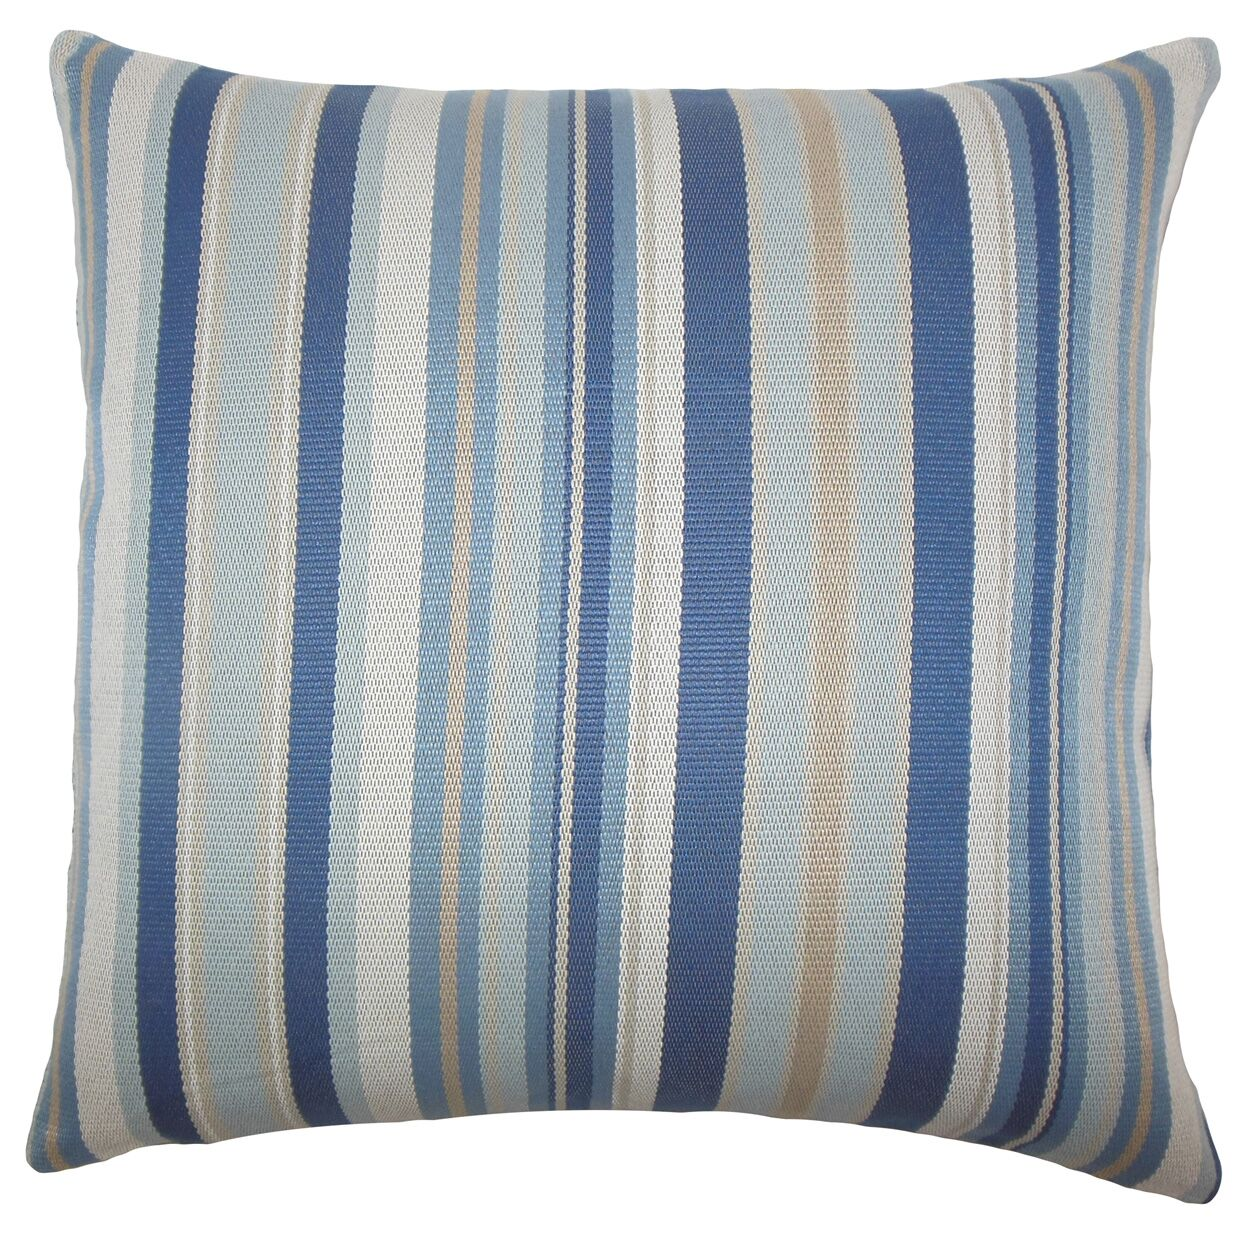 Urbaine Striped Bedding Sham Color: Blue / Brown, Size: Standard